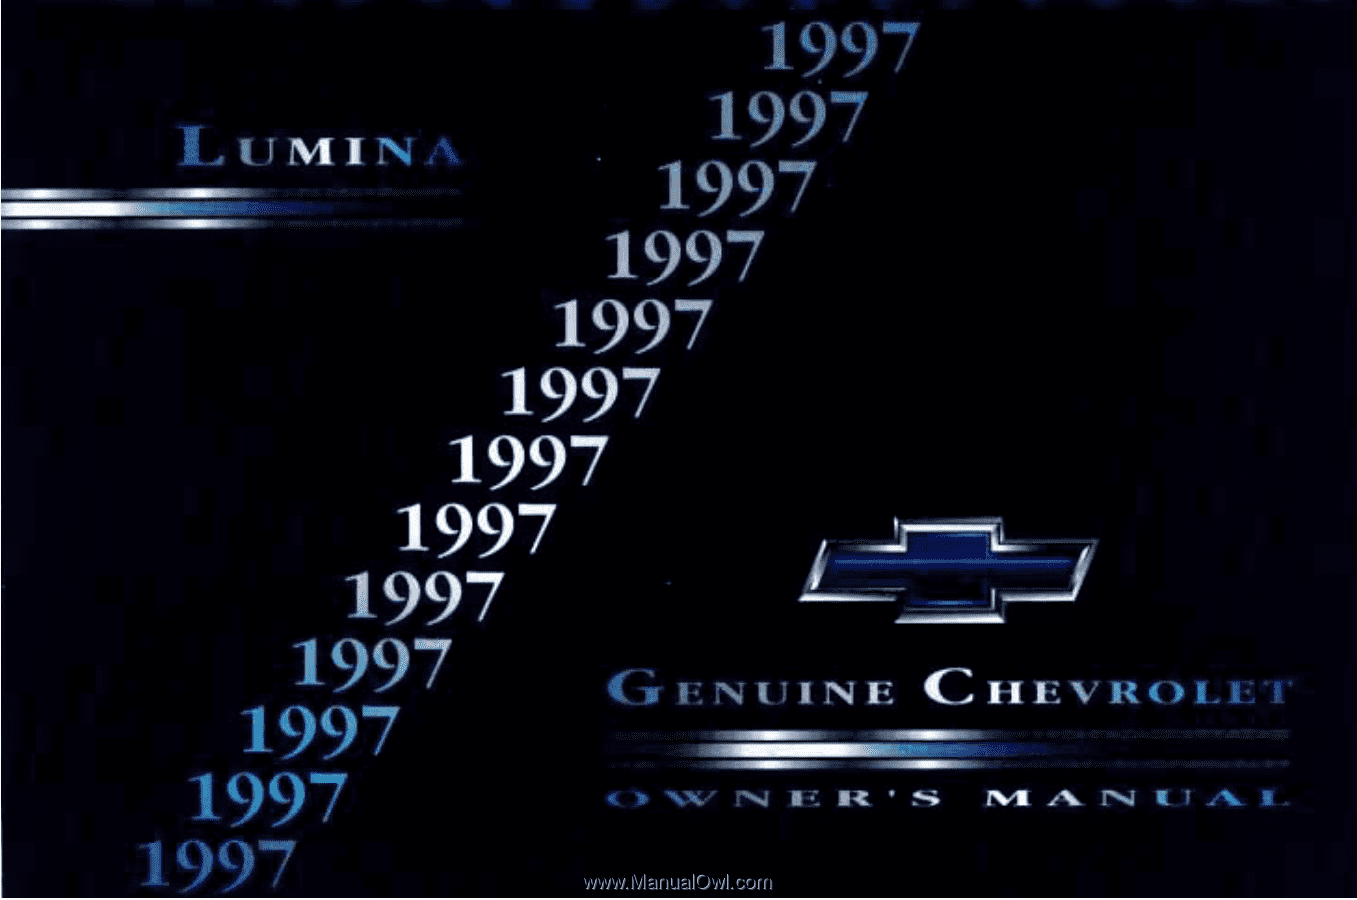 All Chevy 1997 chevy lumina owners manual : 1997 Chevrolet Lumina   Owner's Manual